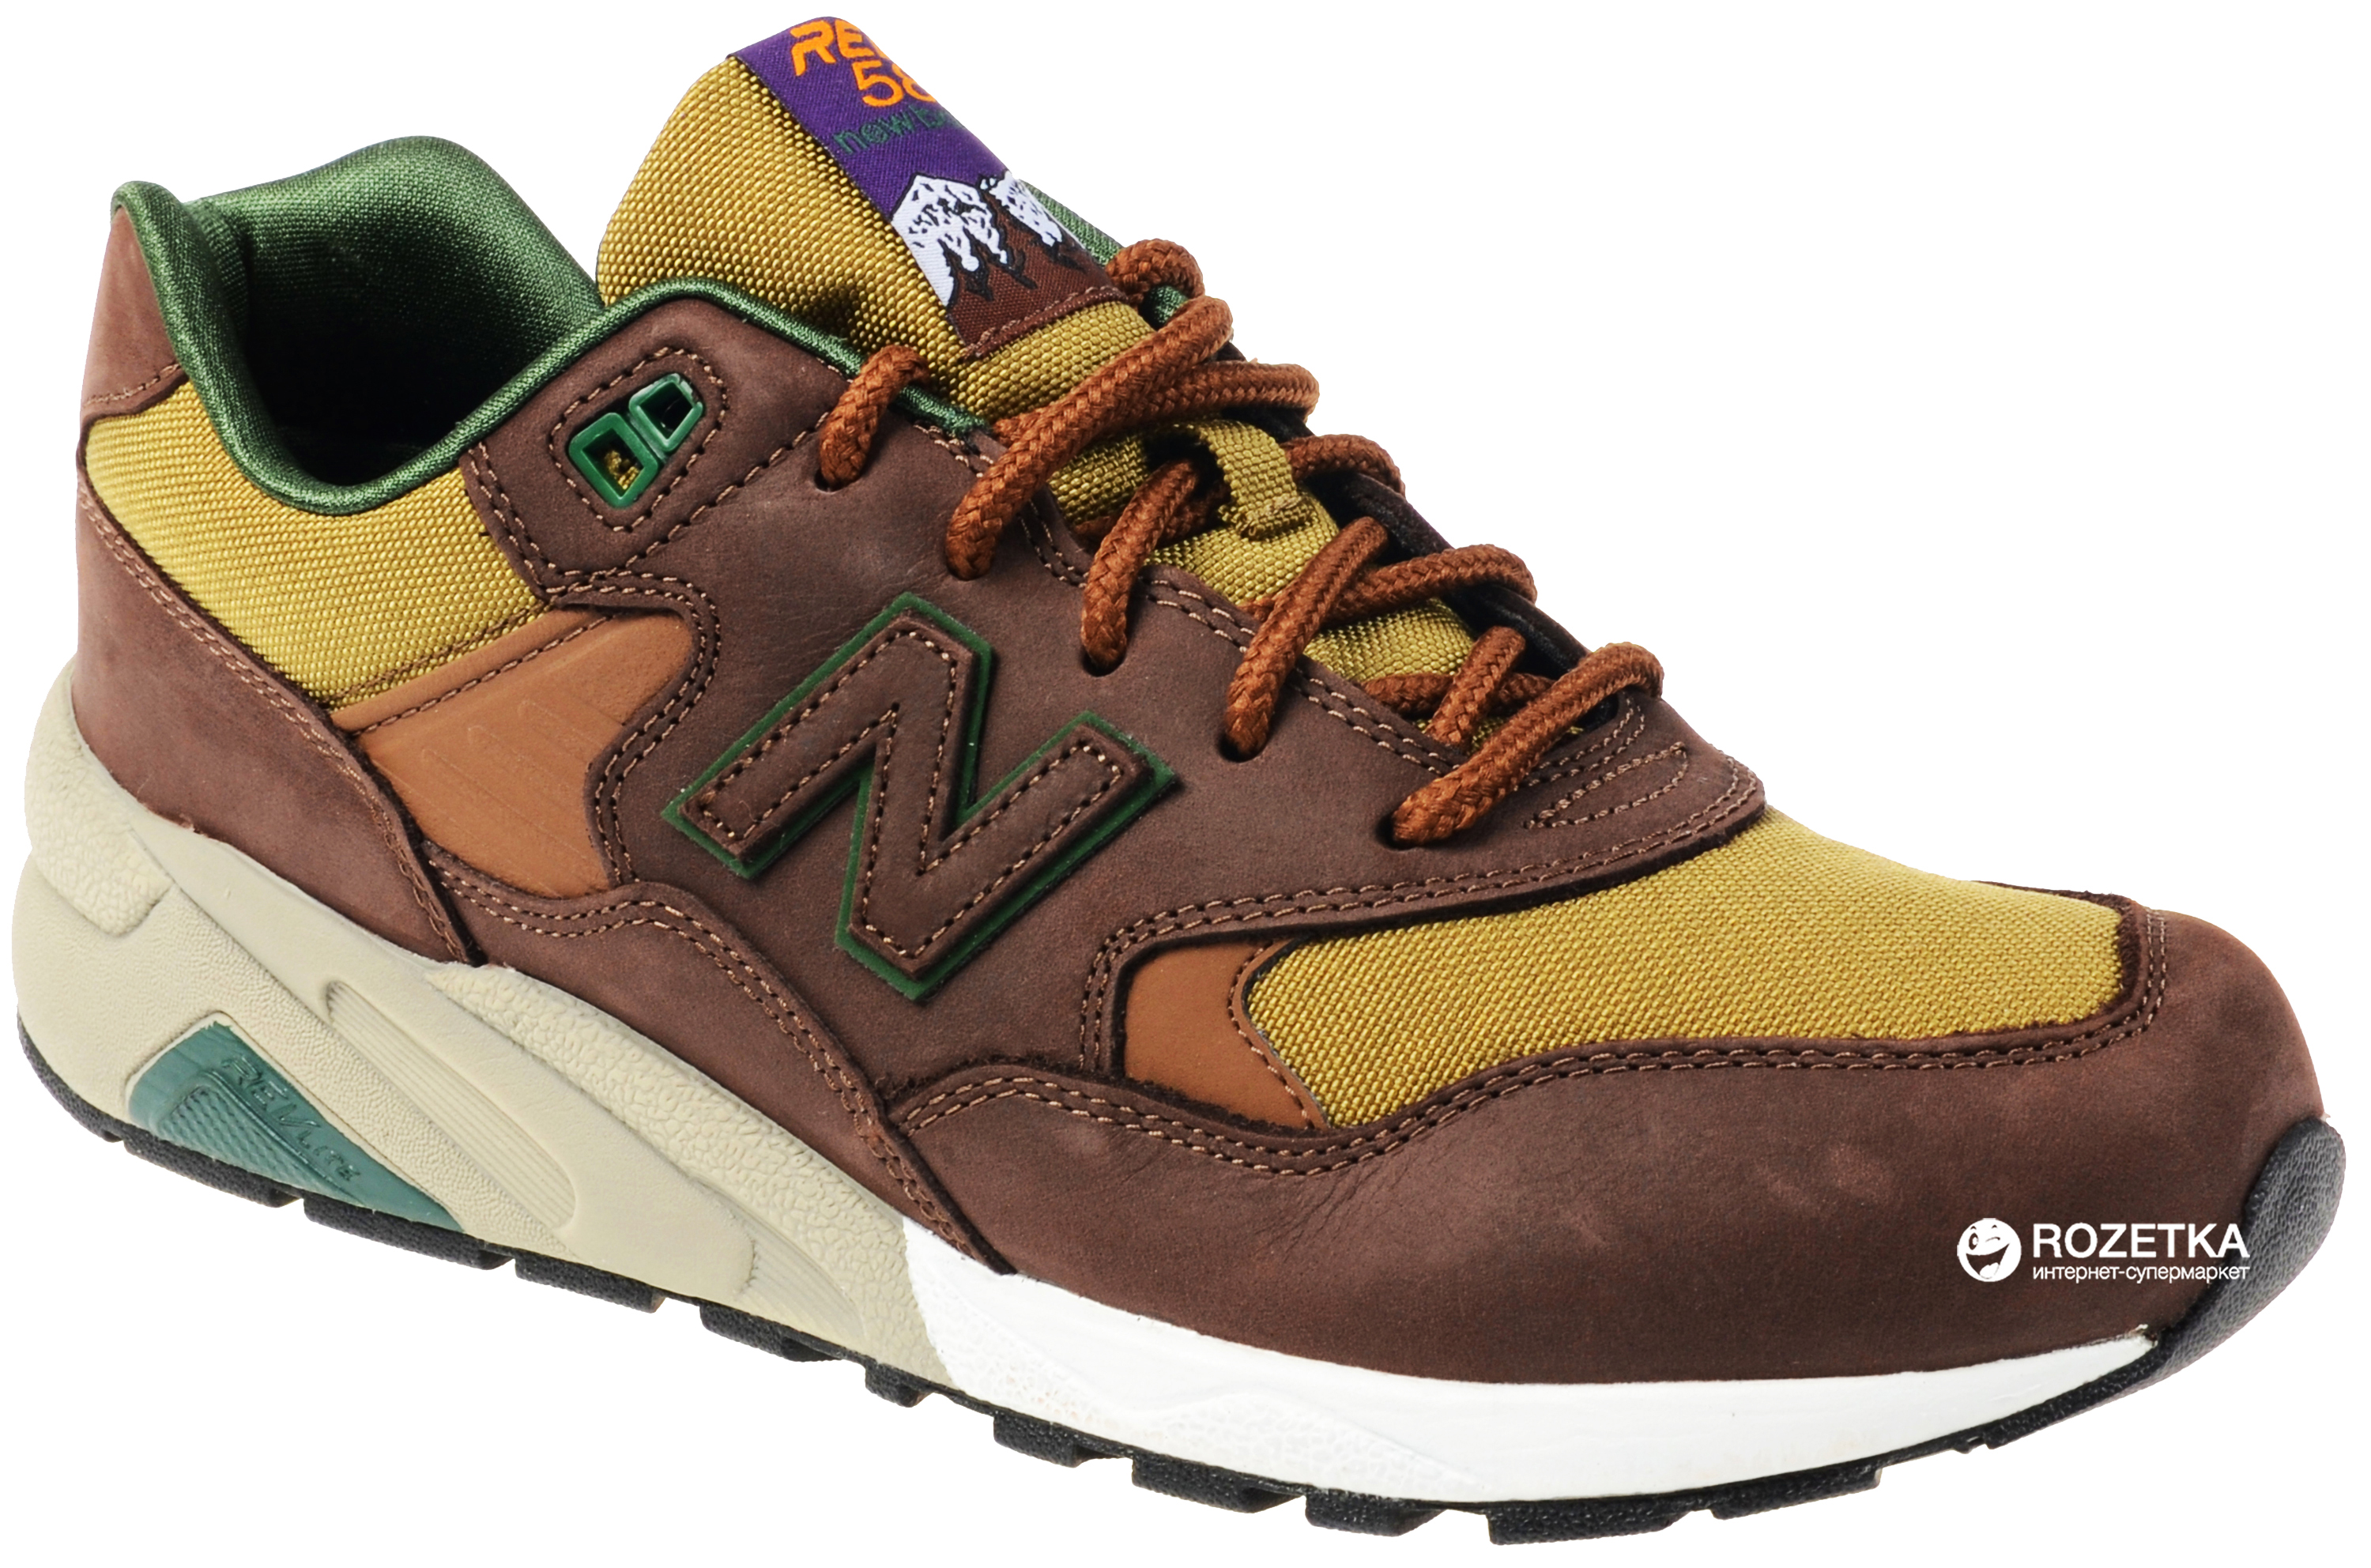 save off dfd23 4889b ROZETKA | Кроссовки New Balance 580 MRT580LB 43 (10) 28 см ...